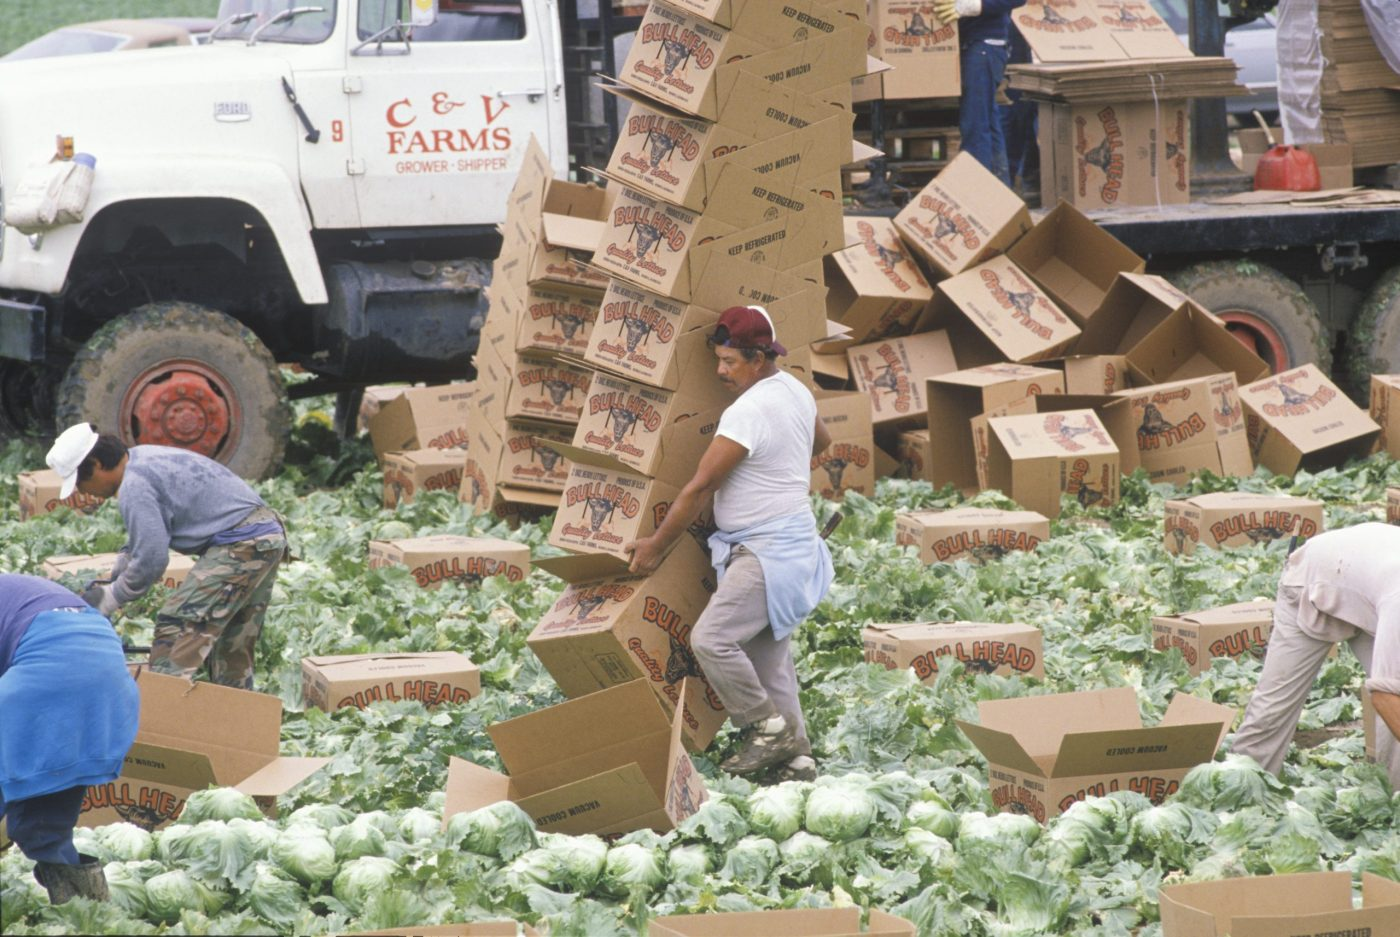 Migrant farm workers harvest and box lettuce in San Joaquin Valley, CA